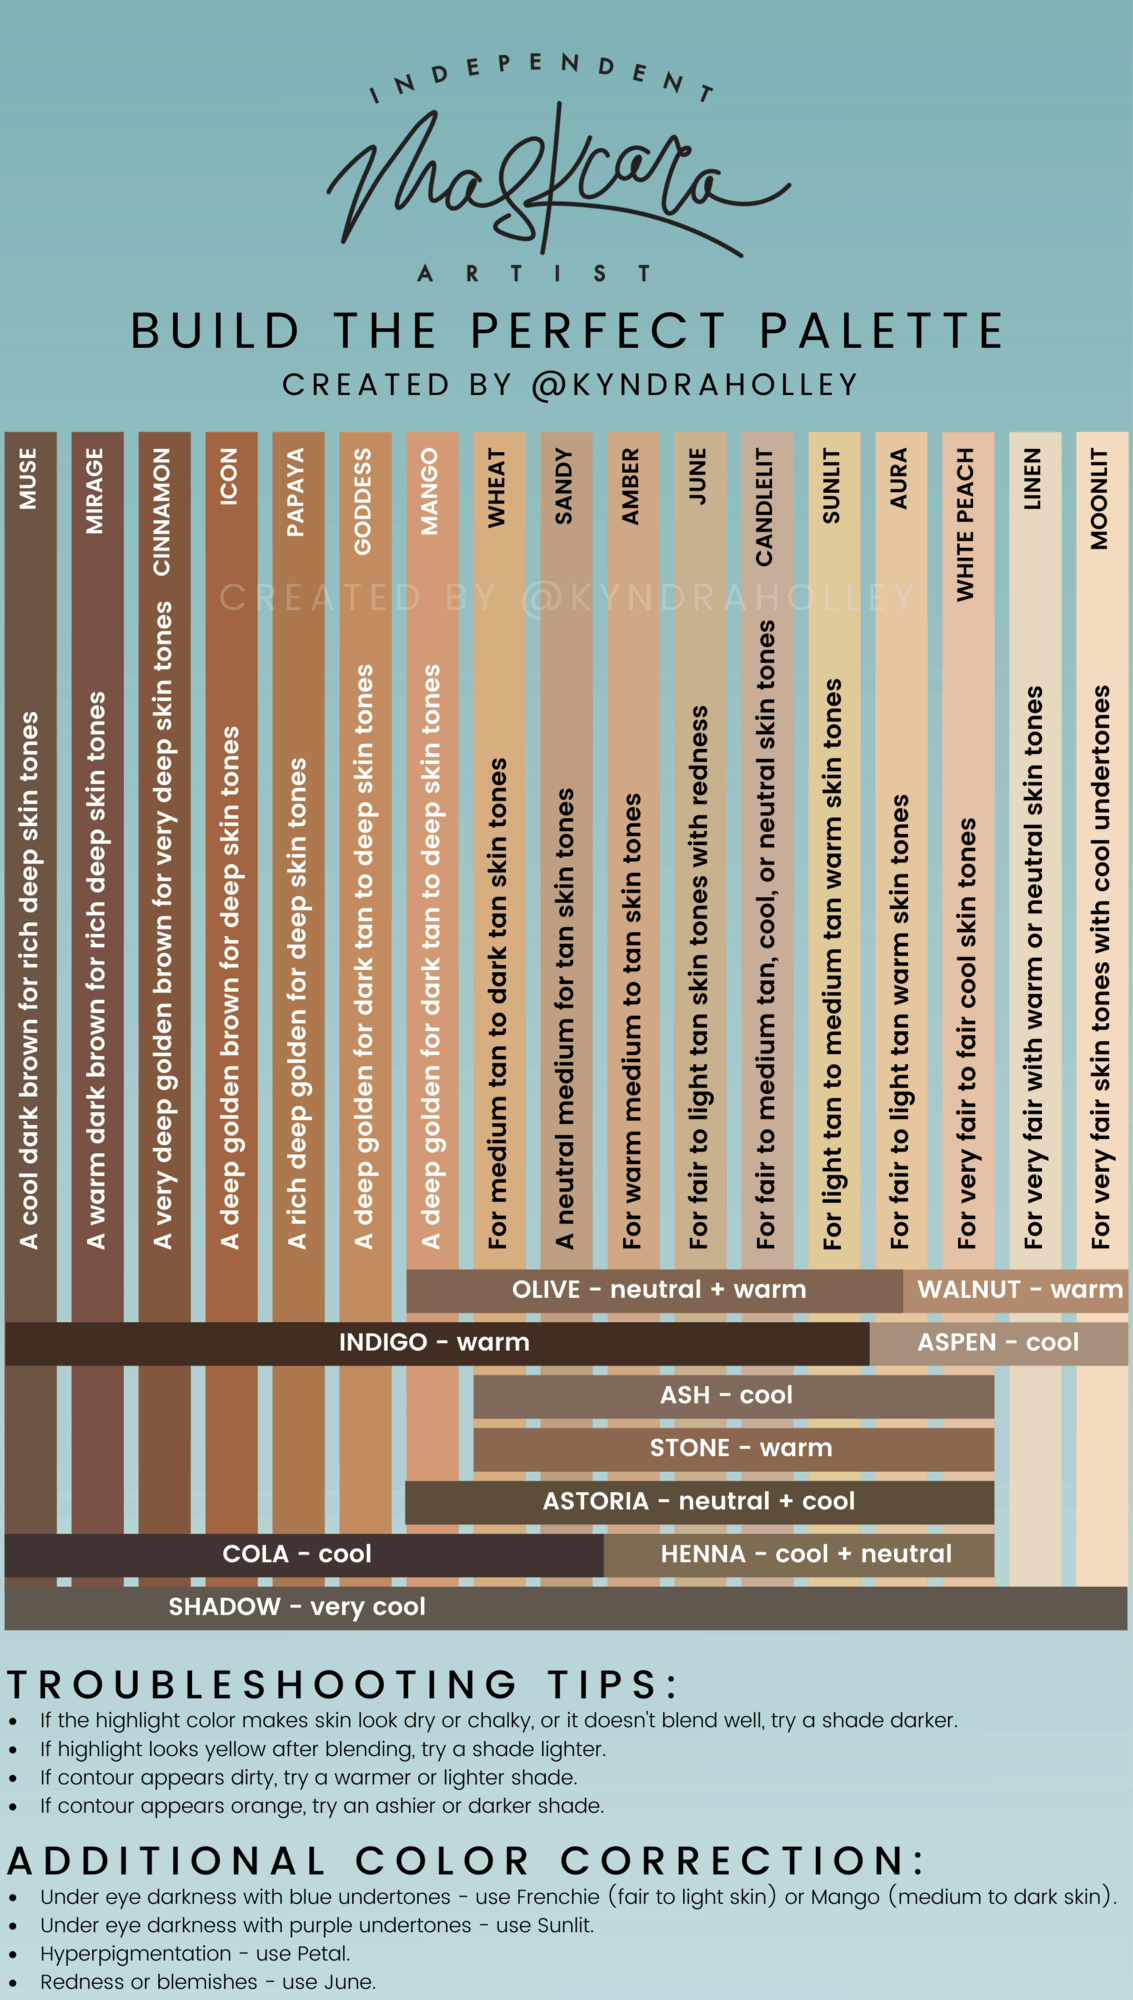 A graphic with a vertical stripe of each Maskcara foundation color, name, and description, in order from dark to light. Towards the bottom, horizontal stripes of complementary contour colors with the names and descriptions run across the foundation shades. At the bottom of the image are color matching tips.